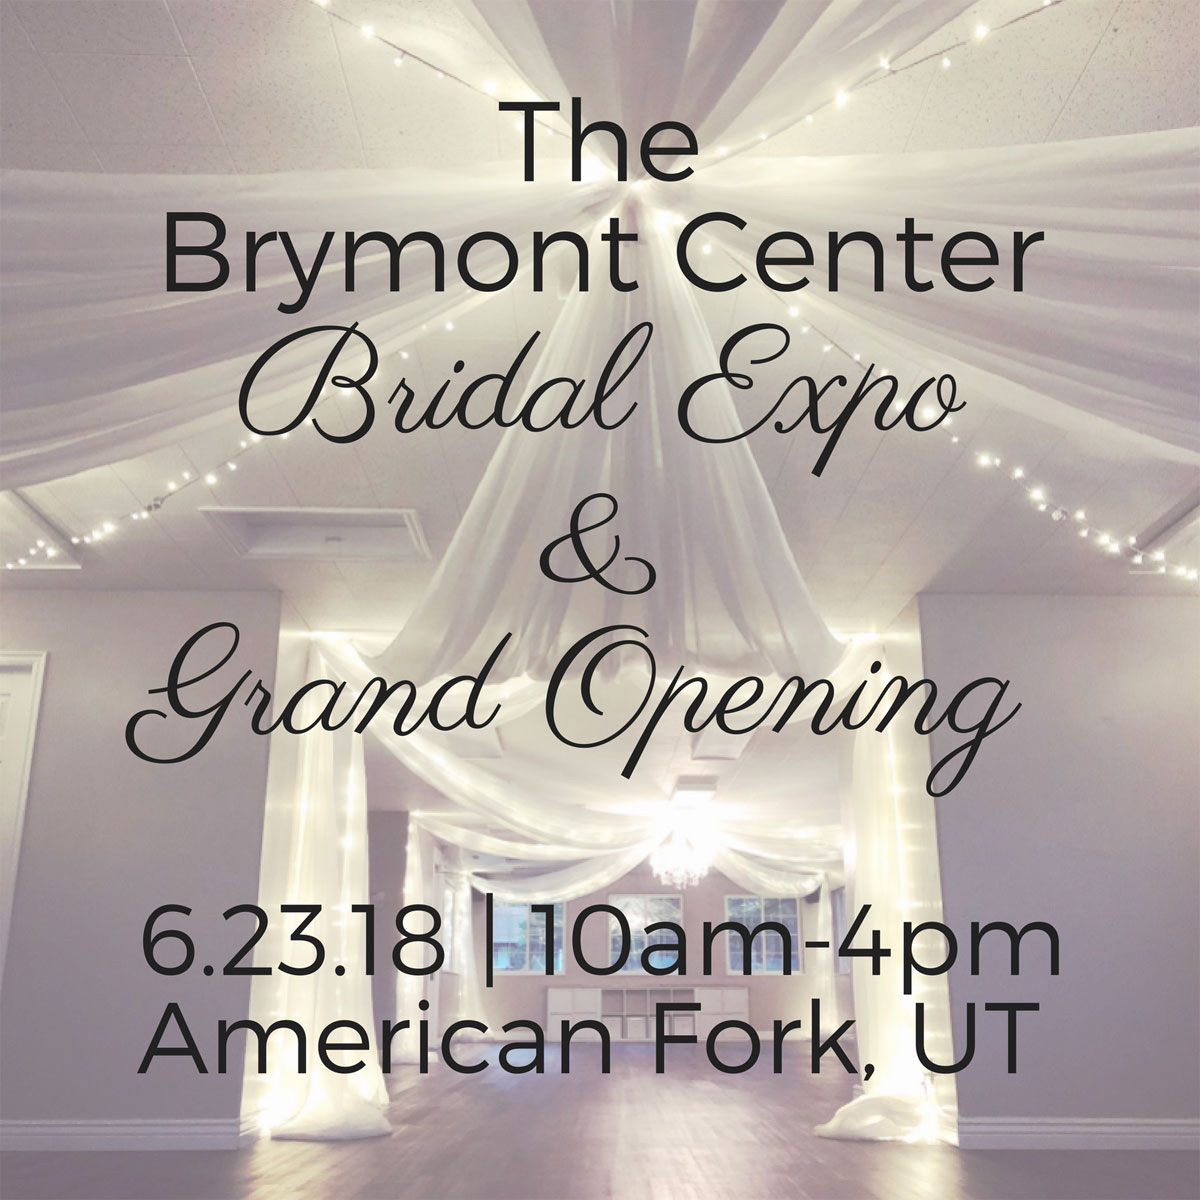 The Brymont Center Bridal Expo